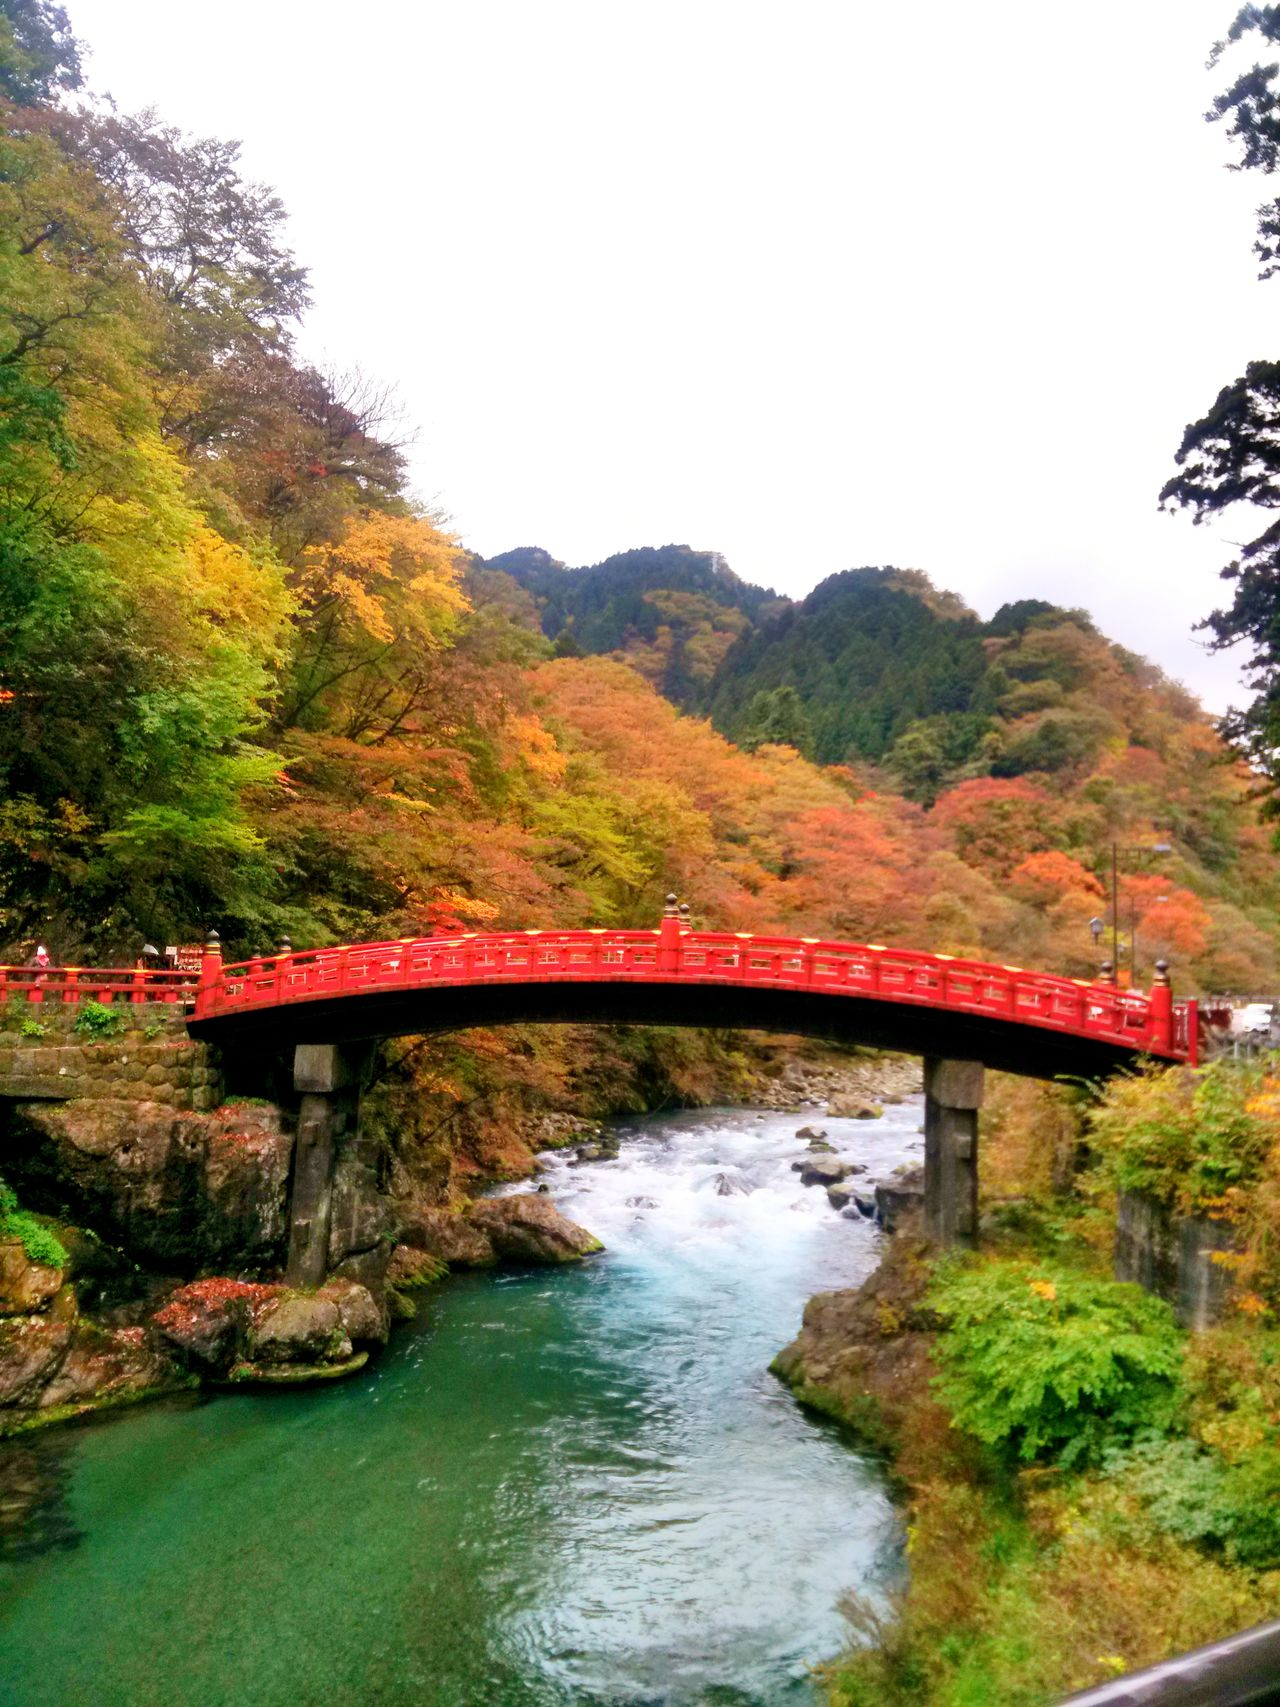 Nikko Japan Nature Beauty In Nature Built Structure Outdoors Enjoying Life Hello World Landscape_Collection Landscapes From My Lens Viewpoint Taking Photos Relaxing Architecture Nature Journey Of Life Capture The Moment Vacations Hanging Out